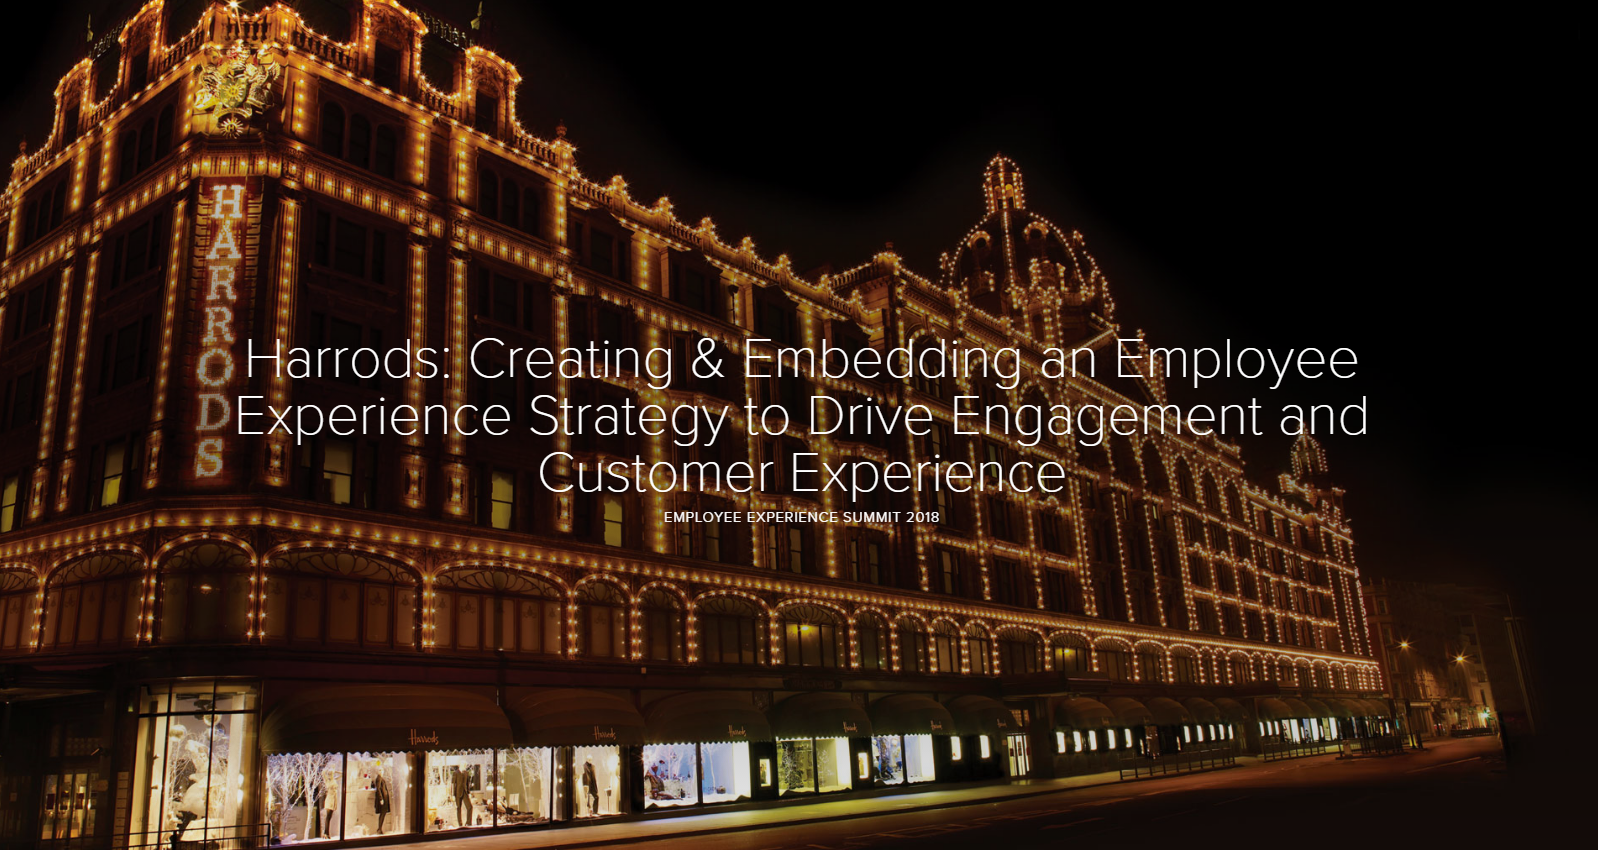 Harrods: Creating and Embedding an Employee Experience Strategy that Drives Staff Engagement and Improved Customer Experiences